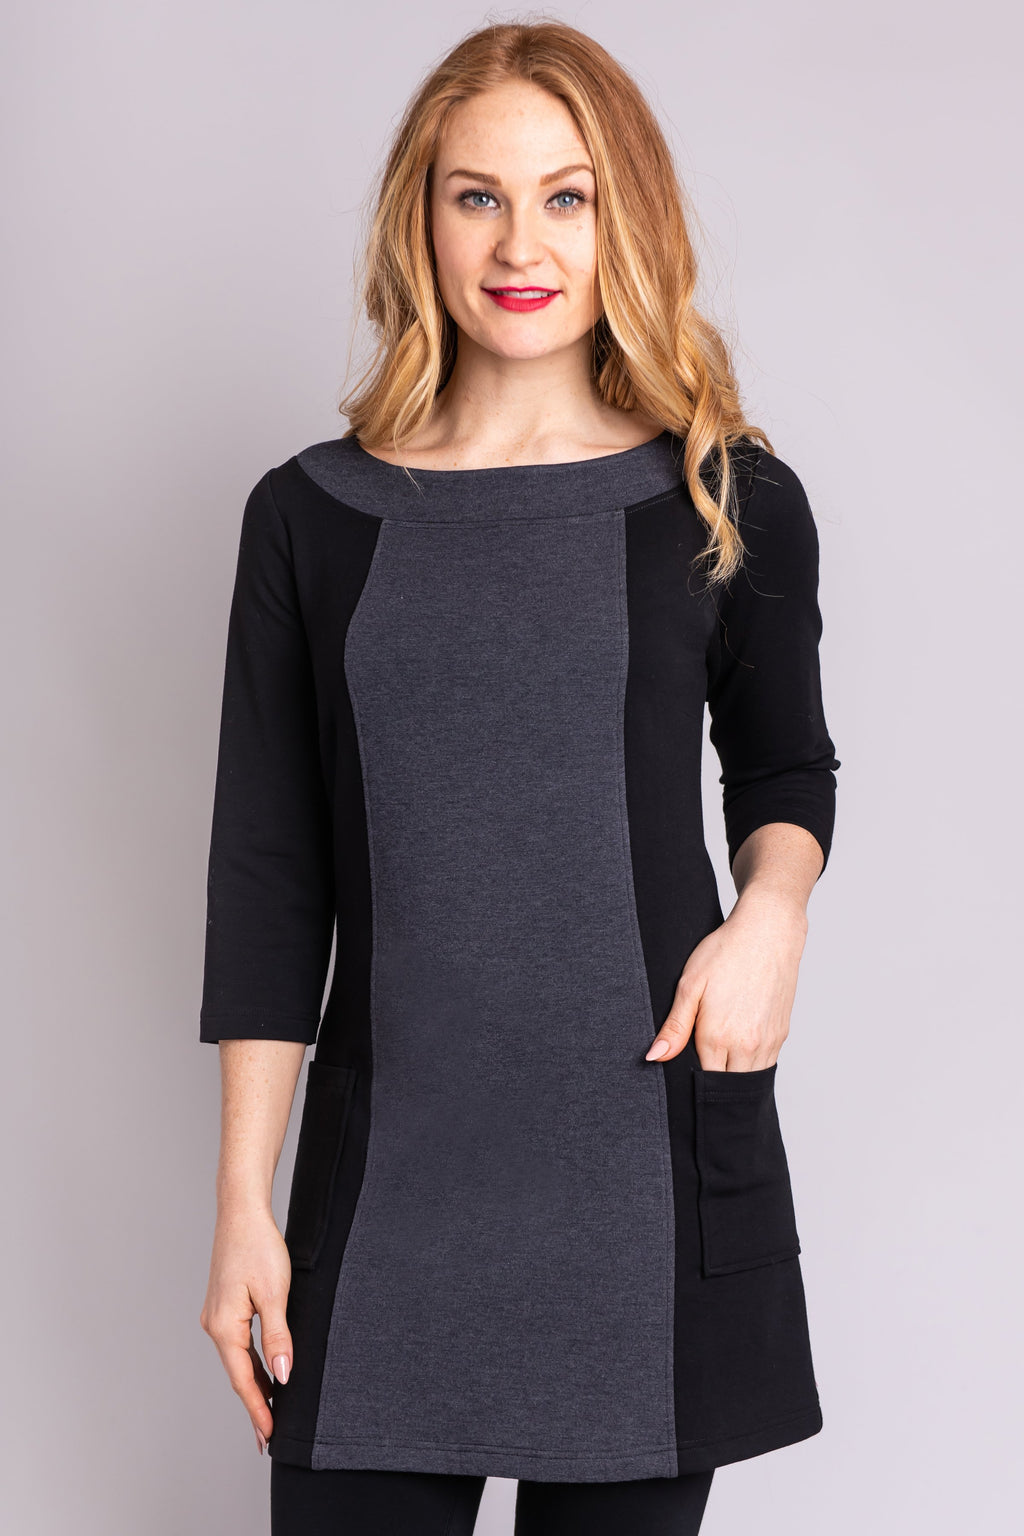 Alison Tunic, Granite, Bamboo Fleece - Blue Sky Clothing Co